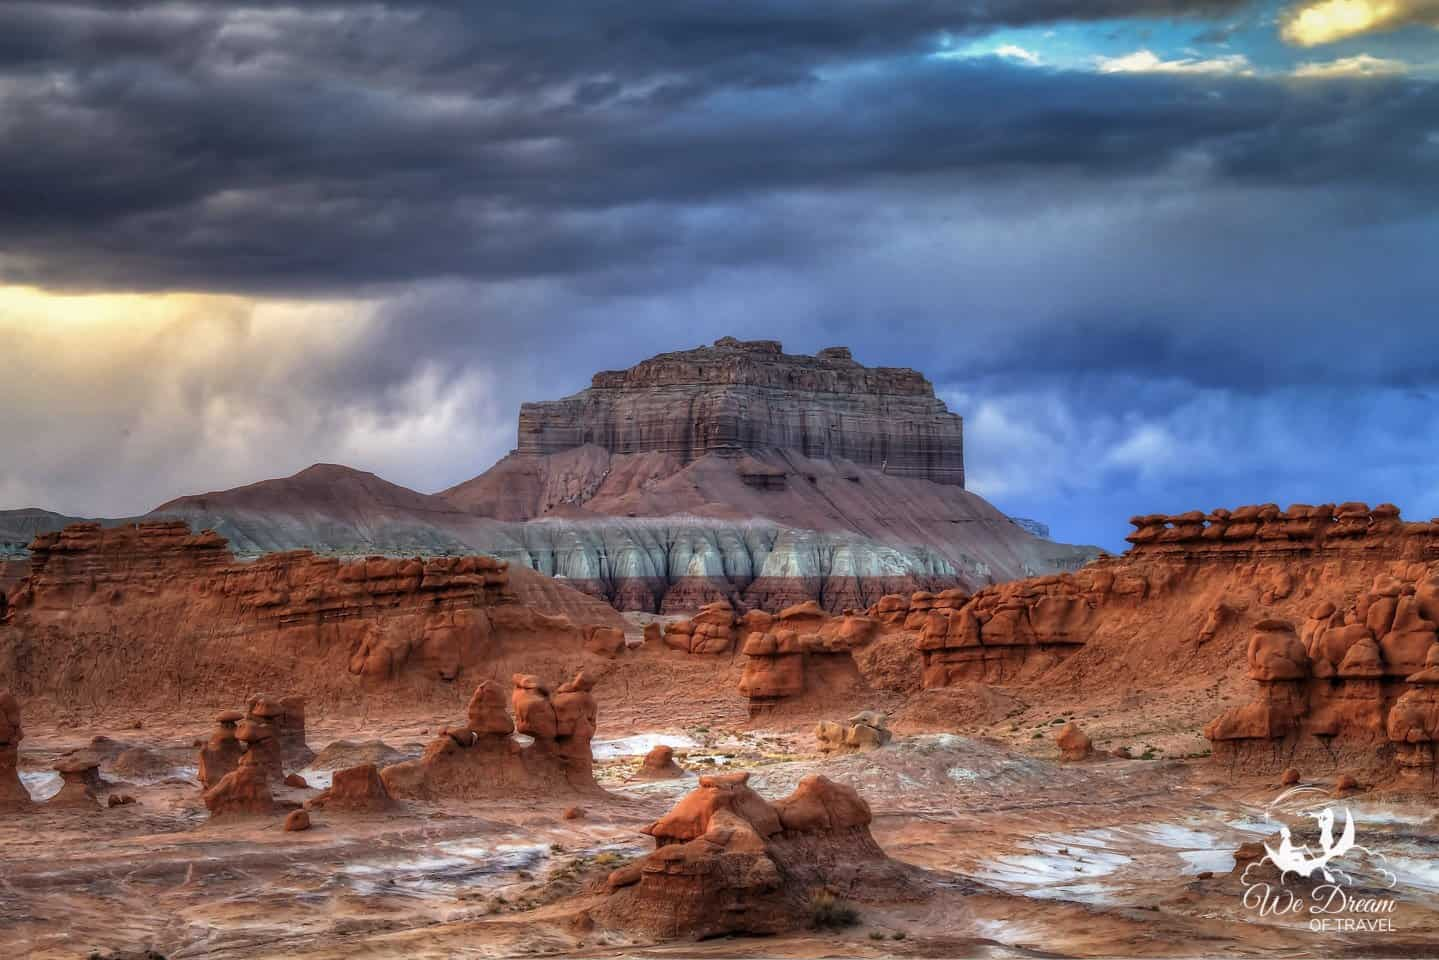 Goblin Valley is one of many incredible places to visit in the American Southwest.